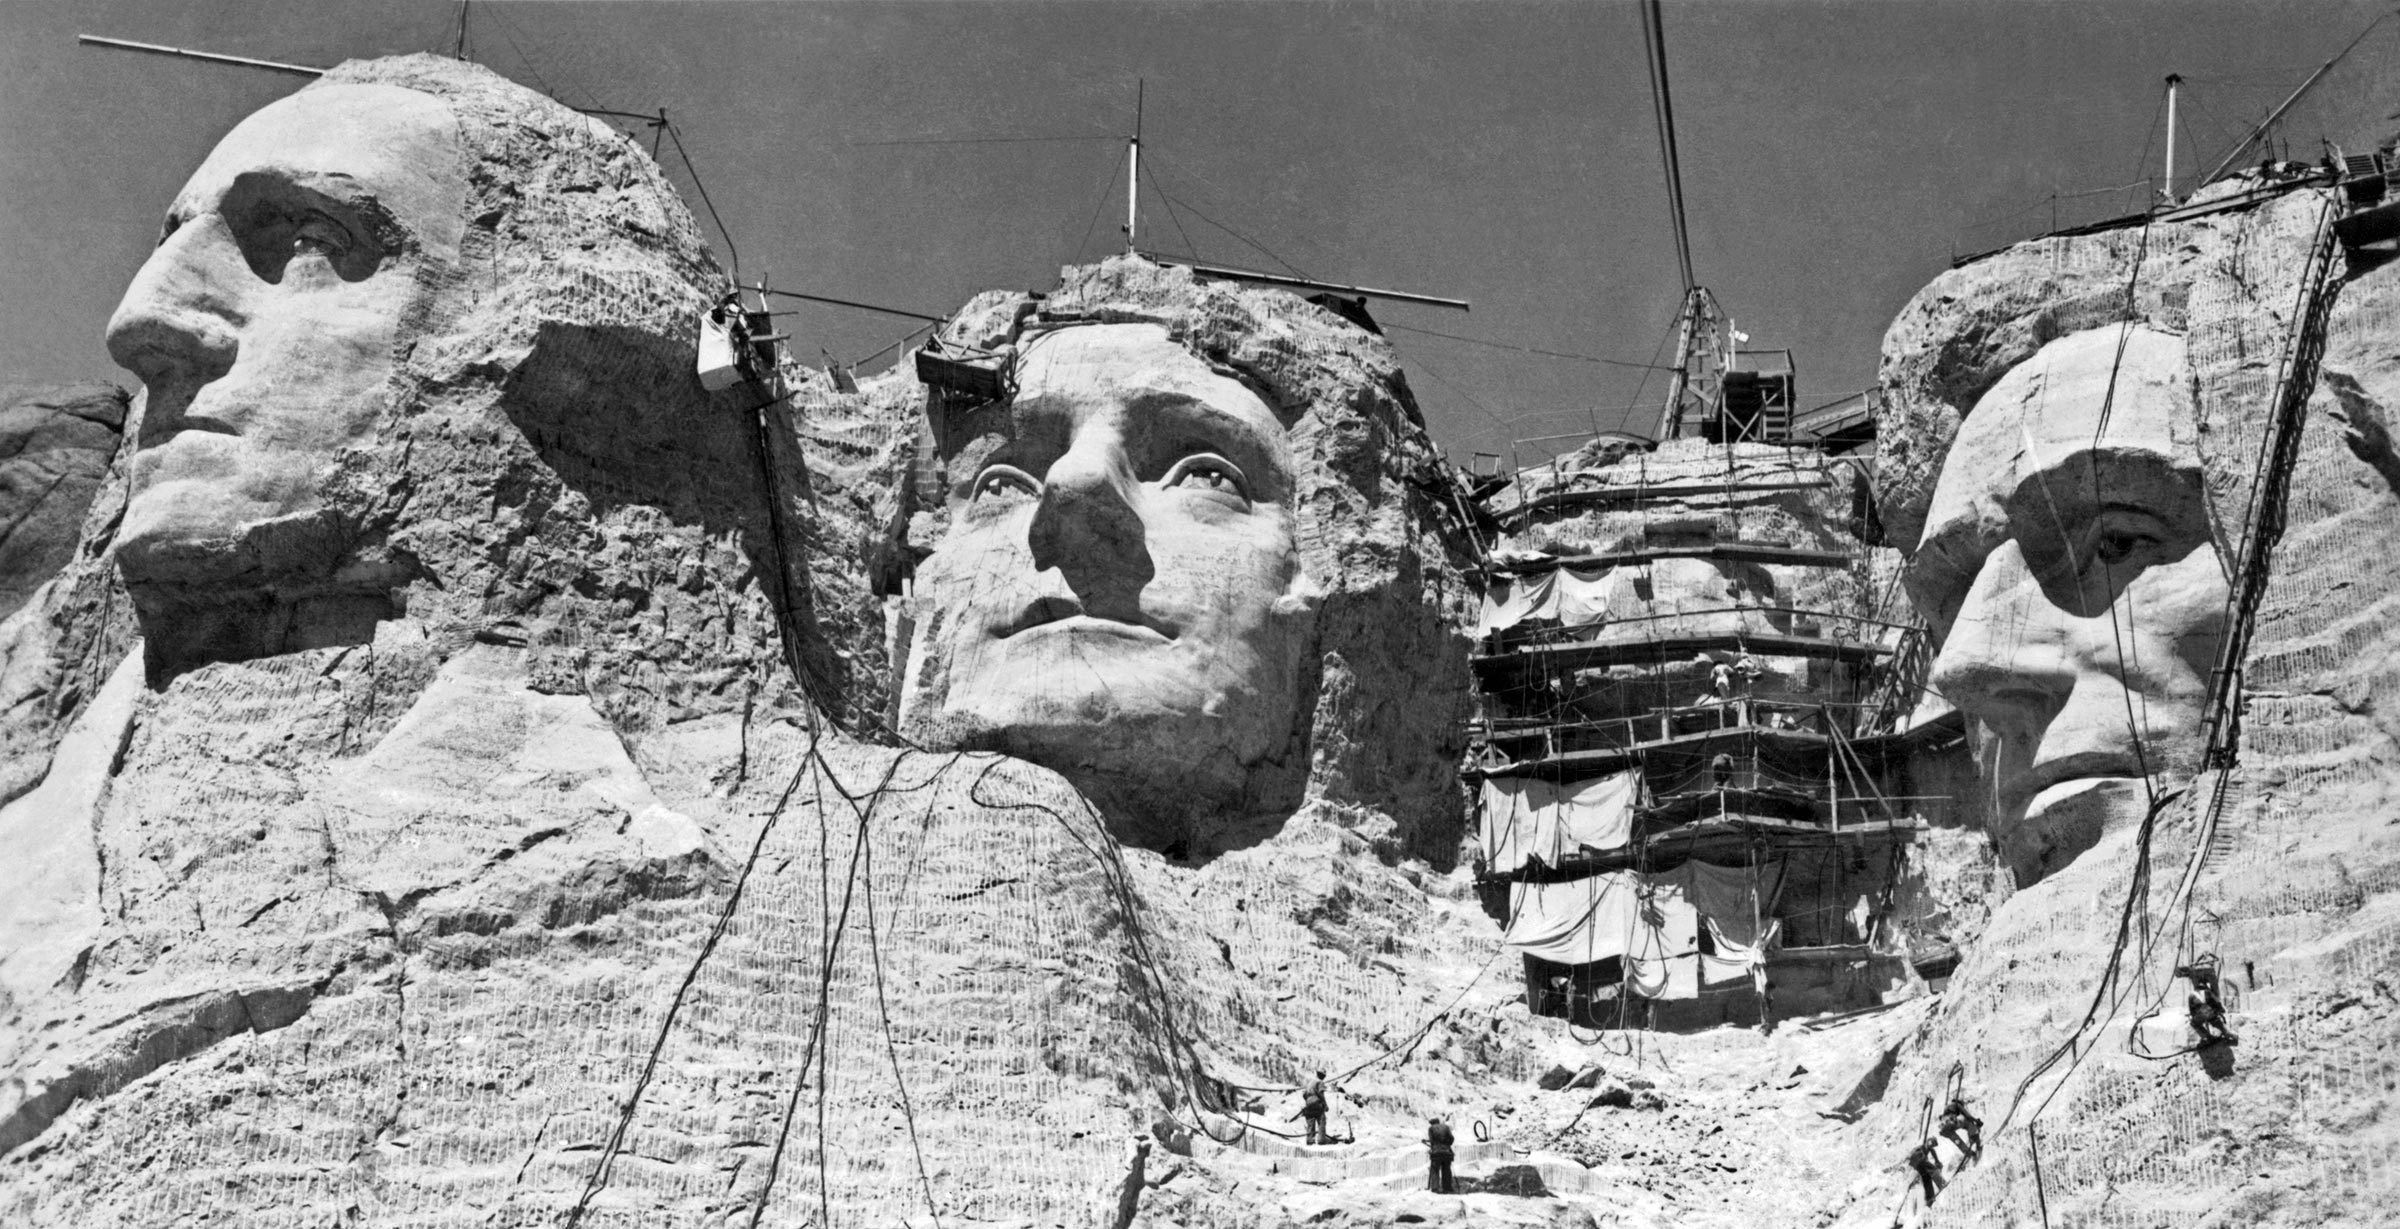 VARIOUS Mt. Rushmore, South Dakota: c. 1938. Workmen on the faces of Mount Rushmore. Roosevelt has the scaffolding over his face.